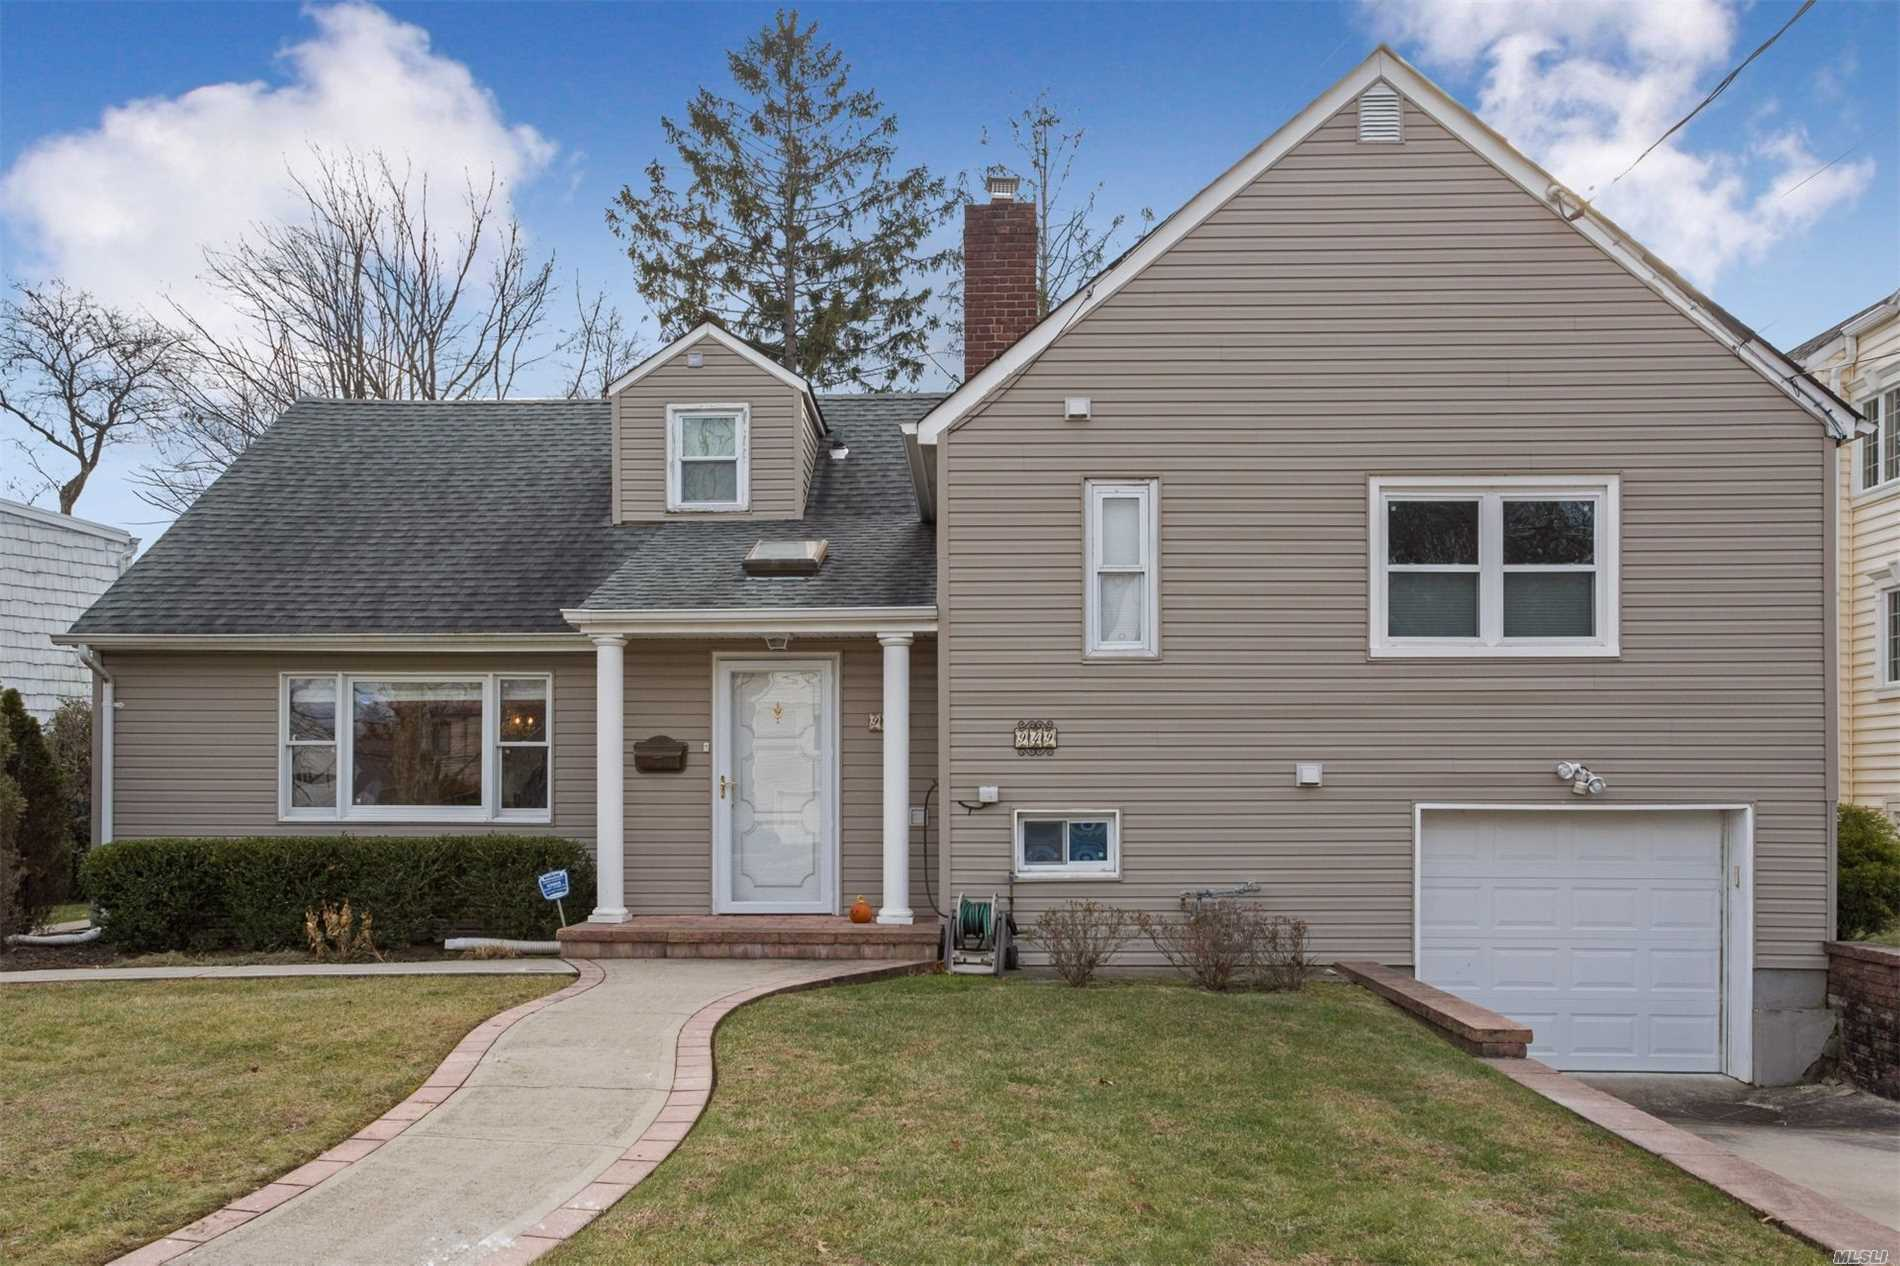 Photo of home for sale at 949 Carol Ave, Woodmere NY